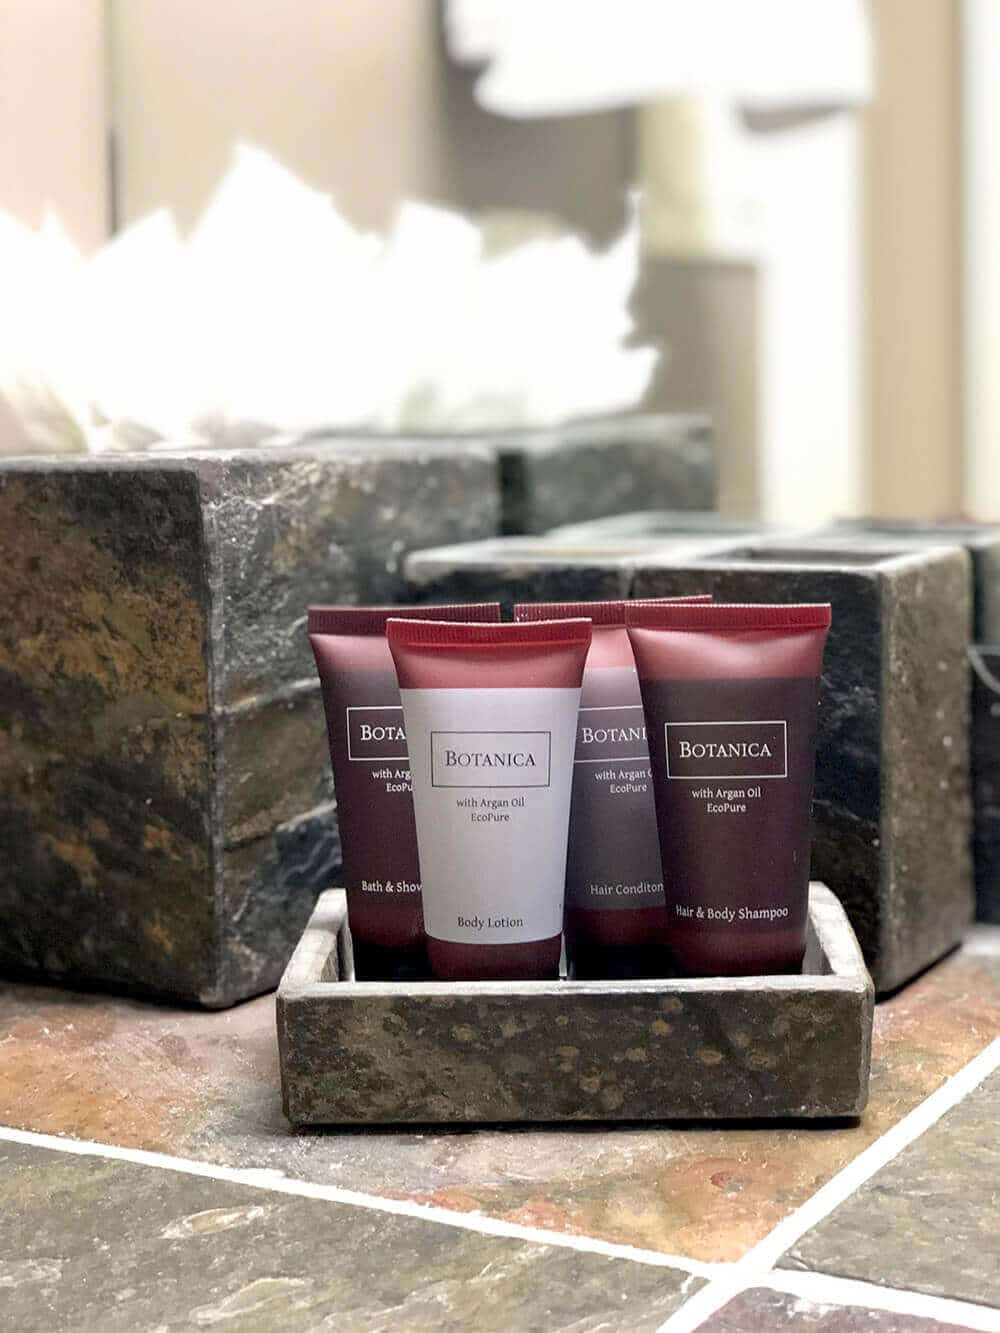 Unused Hotel Toiletries for homeless shelters